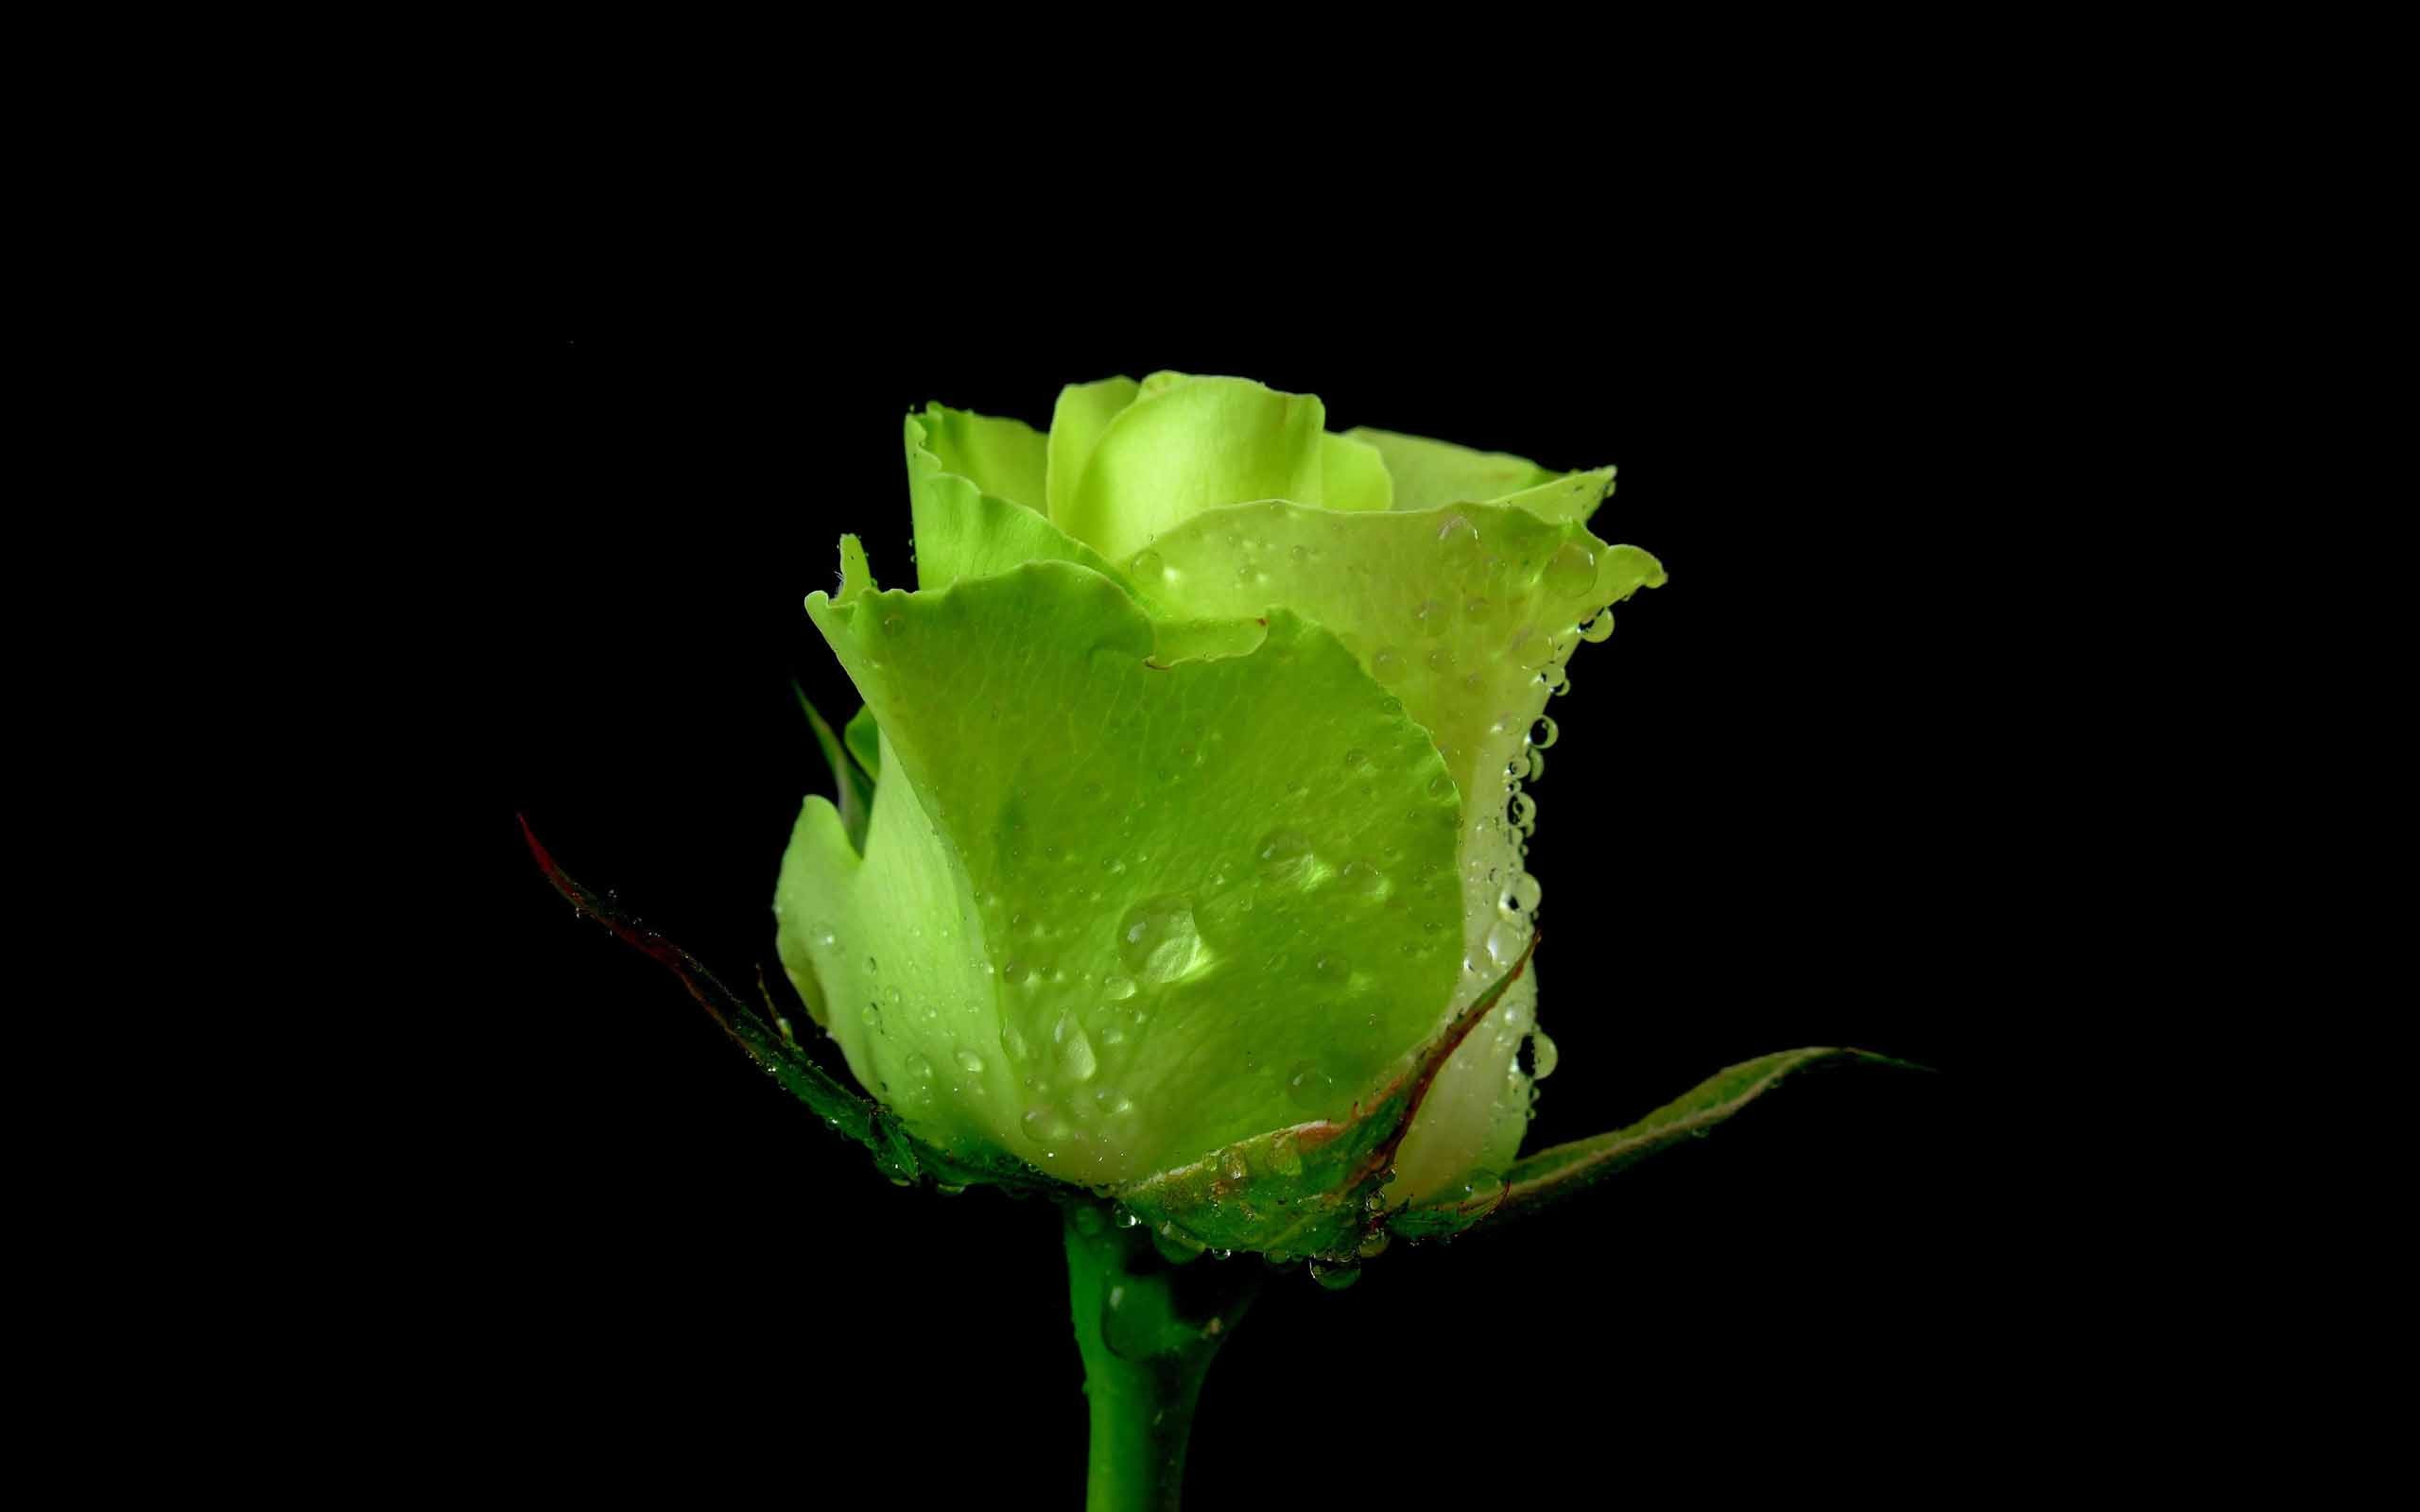 2560x1600 Unseen green rose with black background love wallpaper